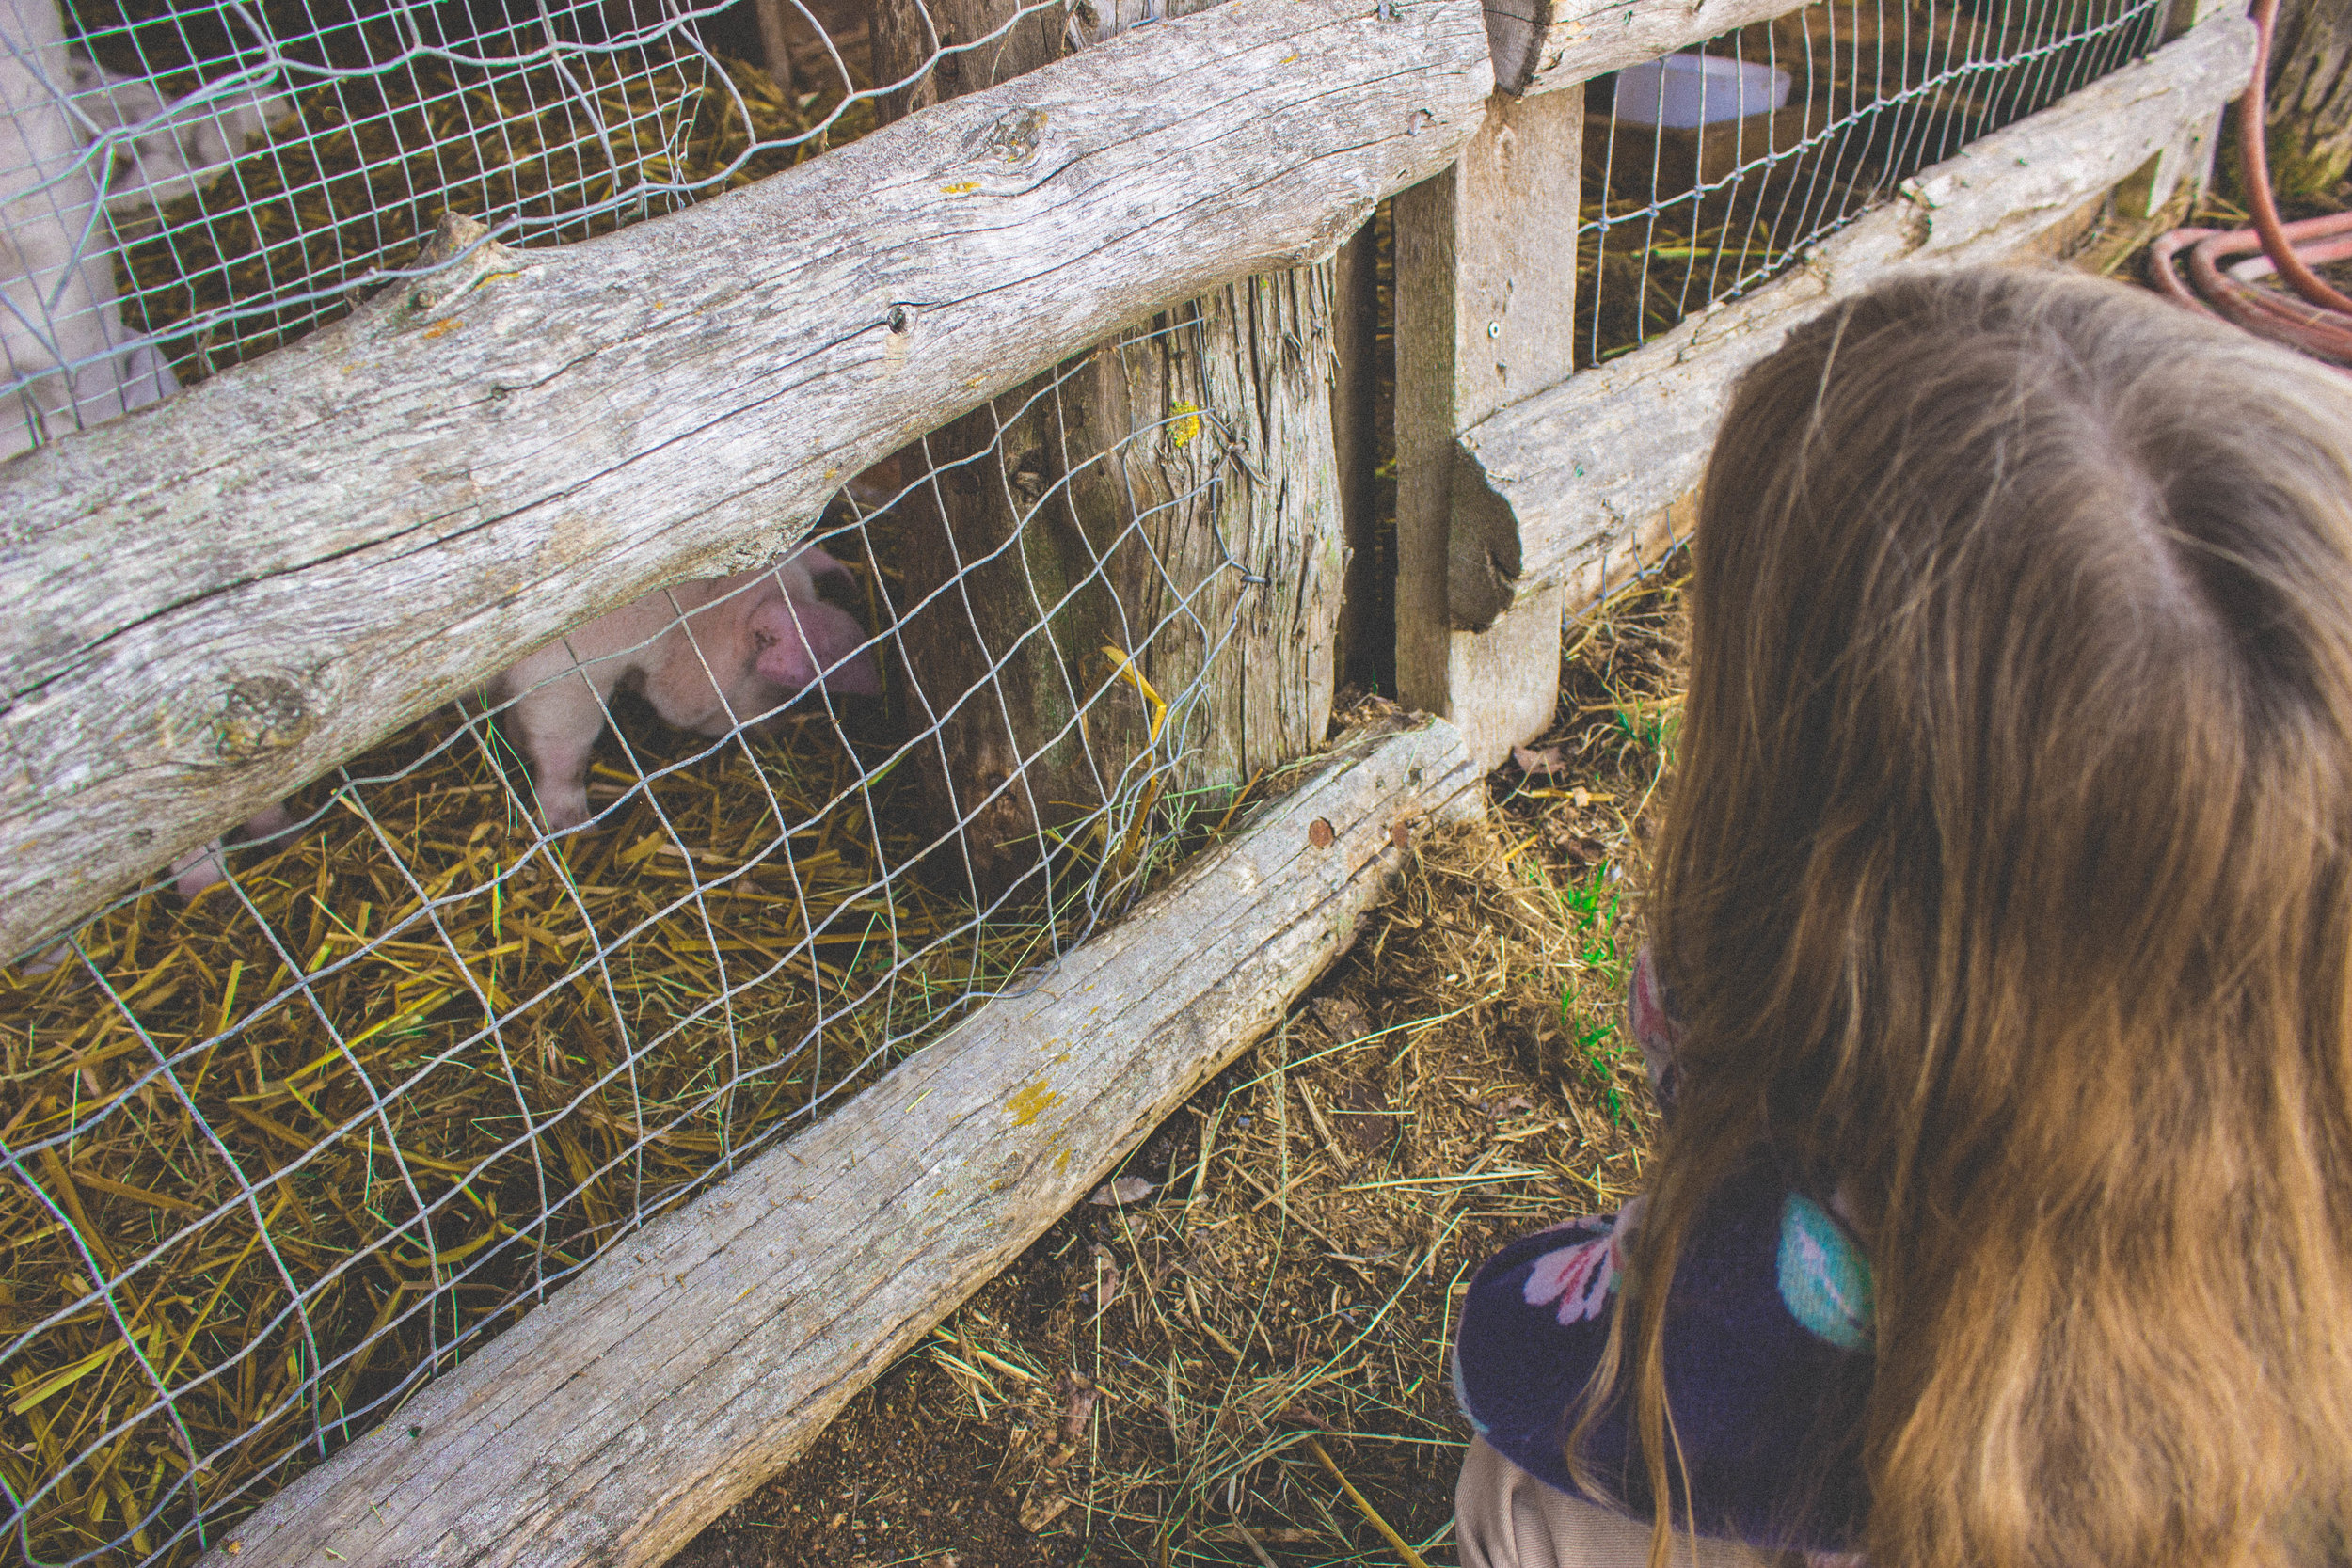 Emma and the piglets